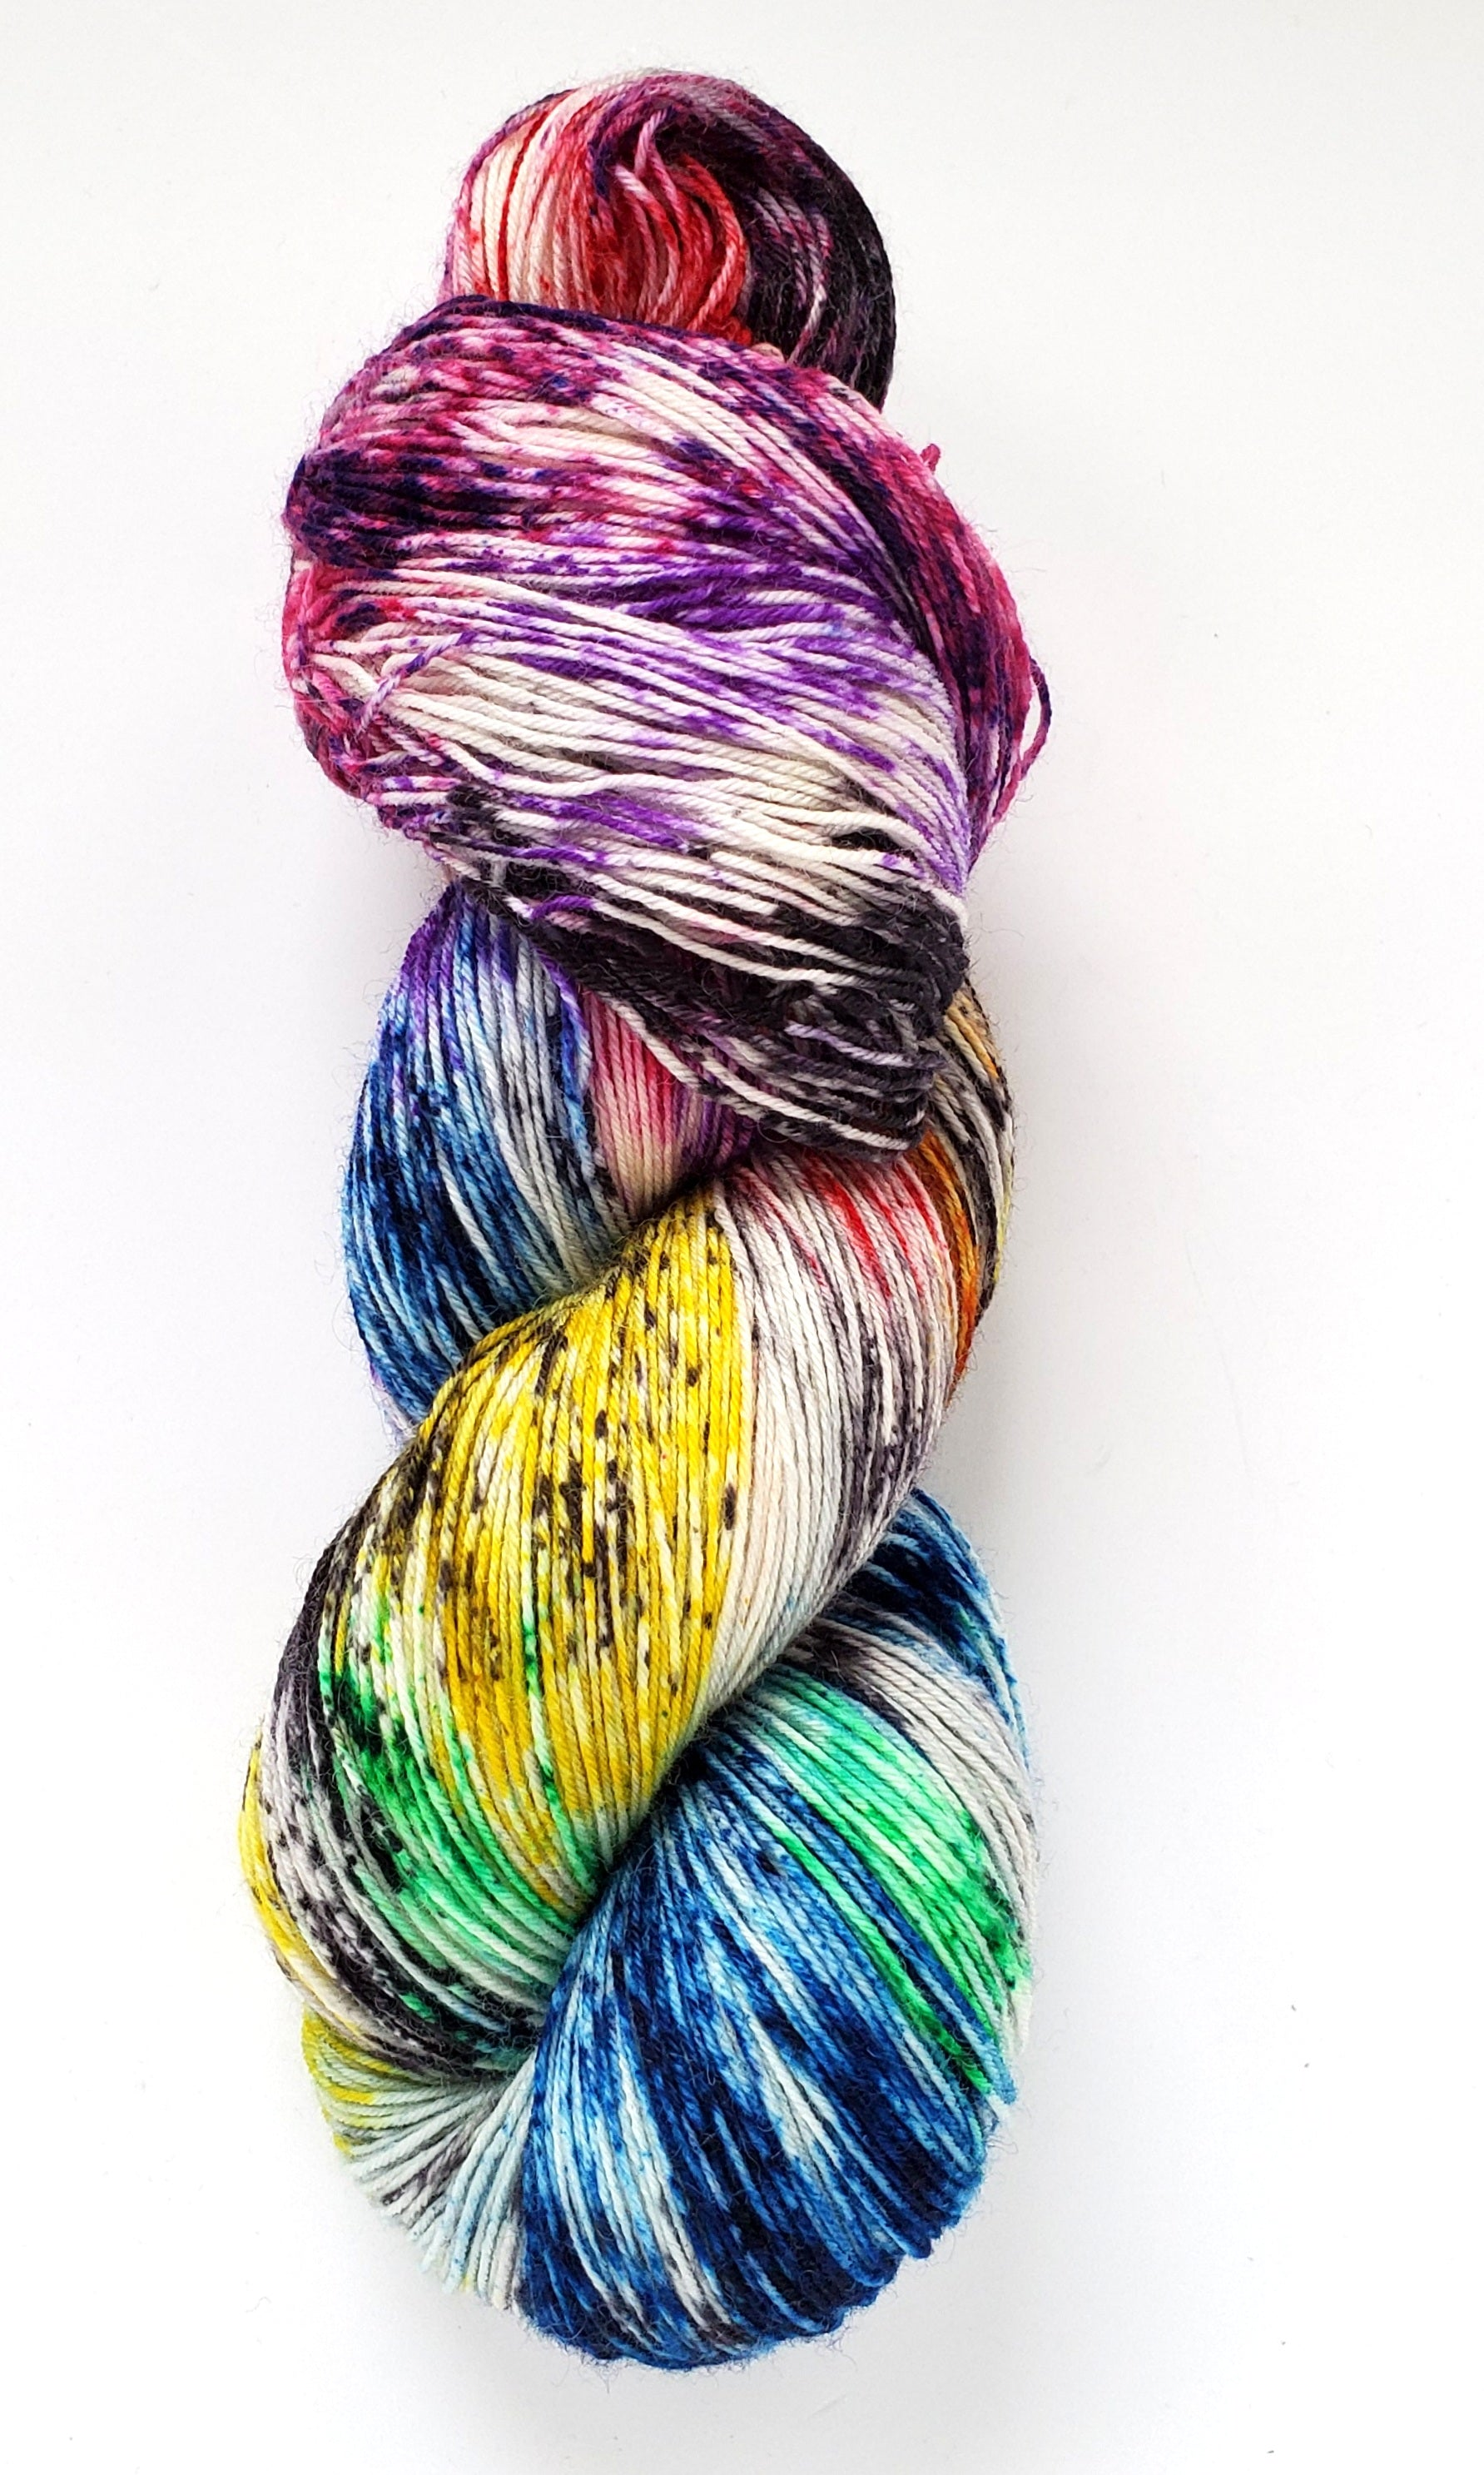 Veronica Hand Dyed Yarn Rainbow Black Speckle